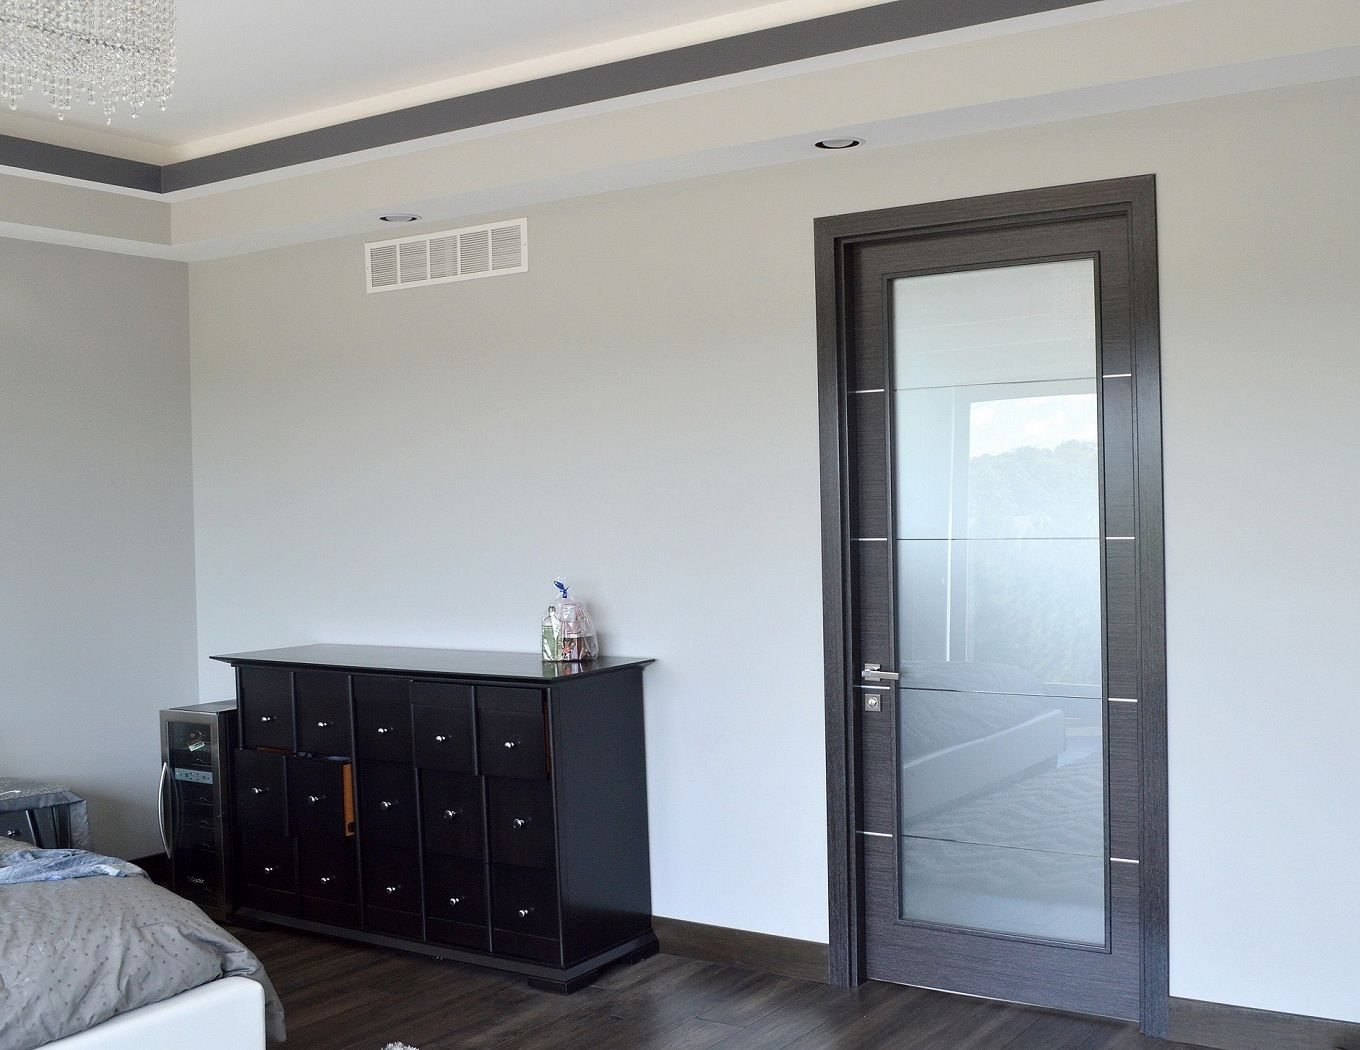 contemporary interior doors with frosted glass with black interior